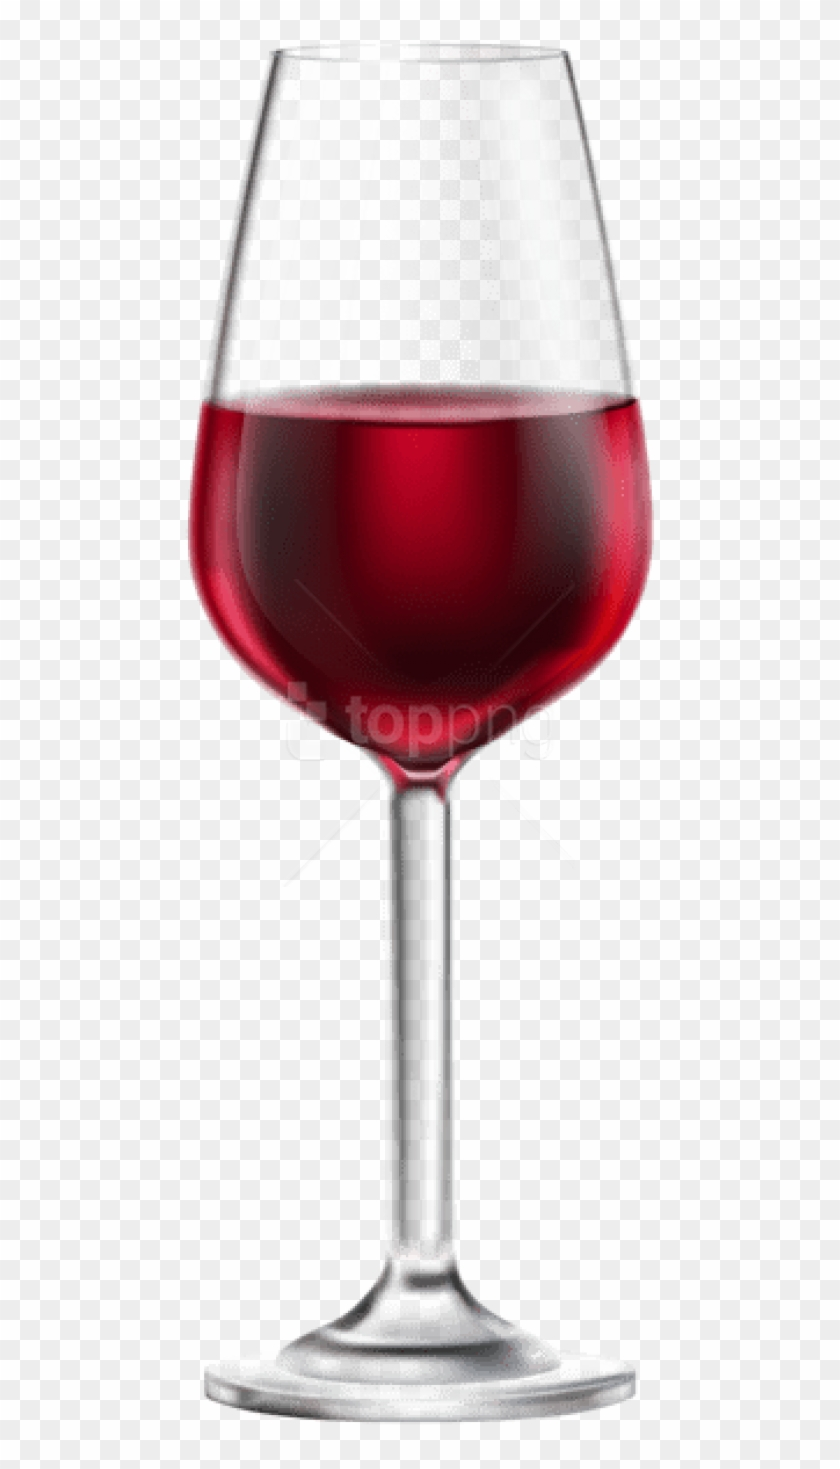 Wine bottle pour clipart png transparent stock Free Png Download Glass Of Red Wine Png Png Images - Wine ... png transparent stock